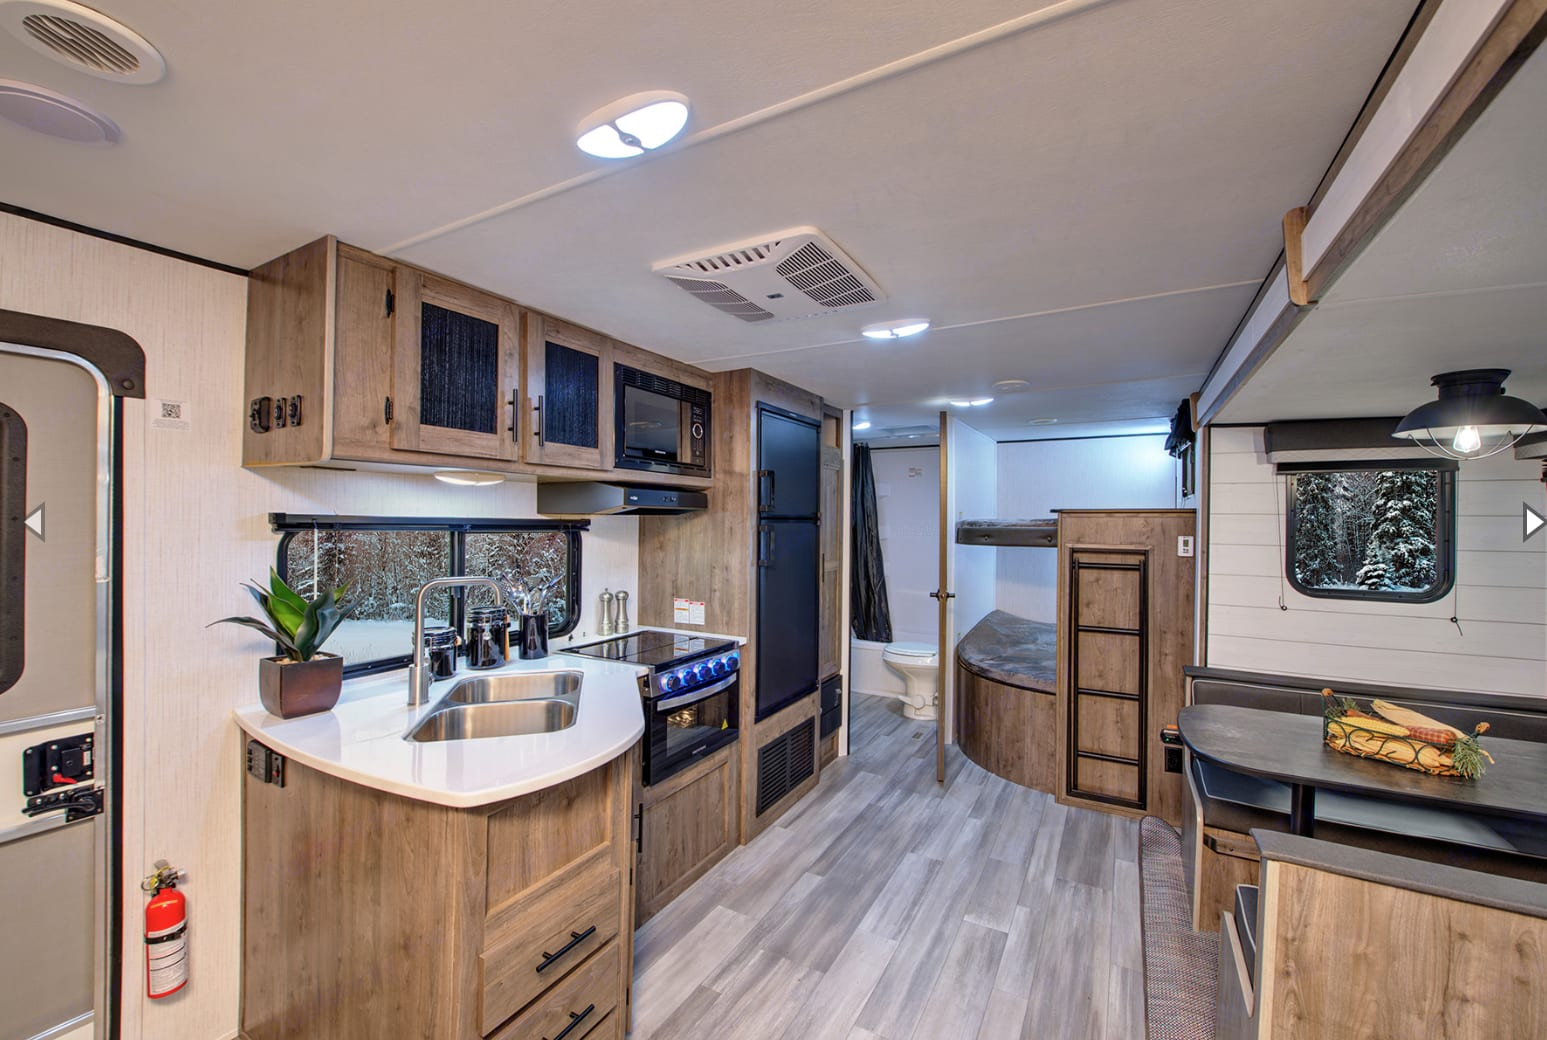 Very spacious interior with the slide out. Kitchen offers everything one could need while away from home. Heartland Pioneer 2021